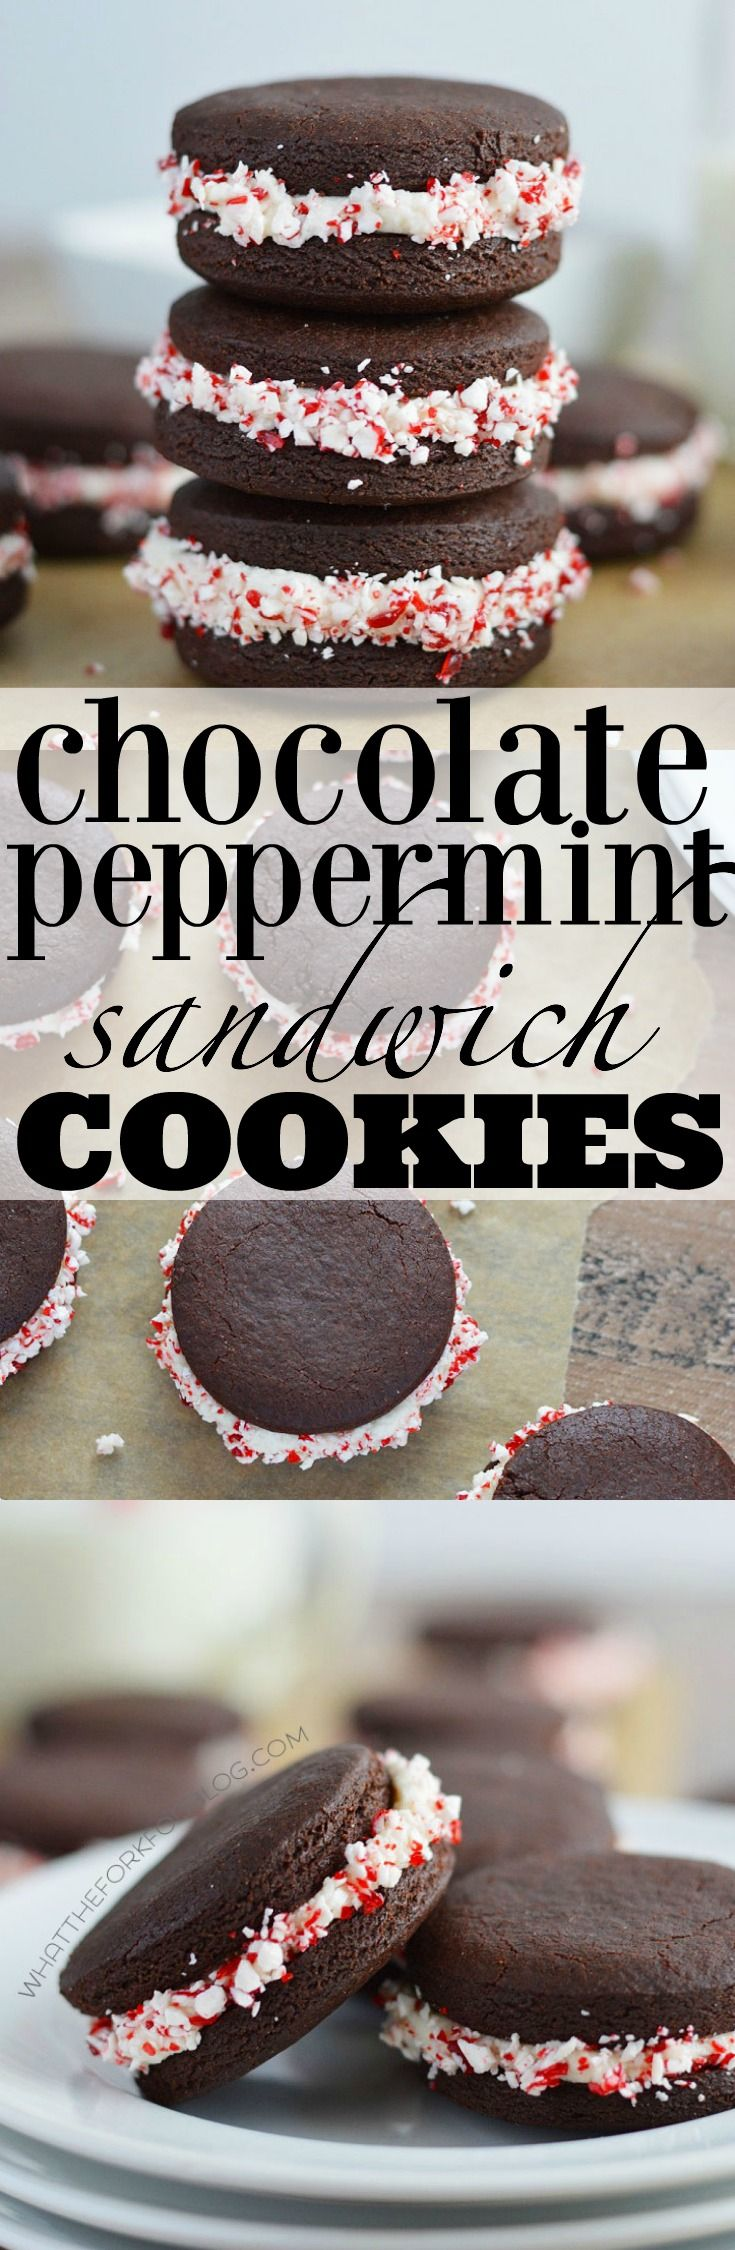 Thesechocolate peppermint sandwich cookies are full of chocolate and minty flavors. The crisp chocolate cookies are stuffed with a creamy peppermint filling and coated in crunchy candy cane pieces. I can be a complete sucker for cookies and these Chocolate Peppermint Sandwich Cookies are no exception. They're like a homemade Oreo on steroids. Crispy chocolate...Read More »